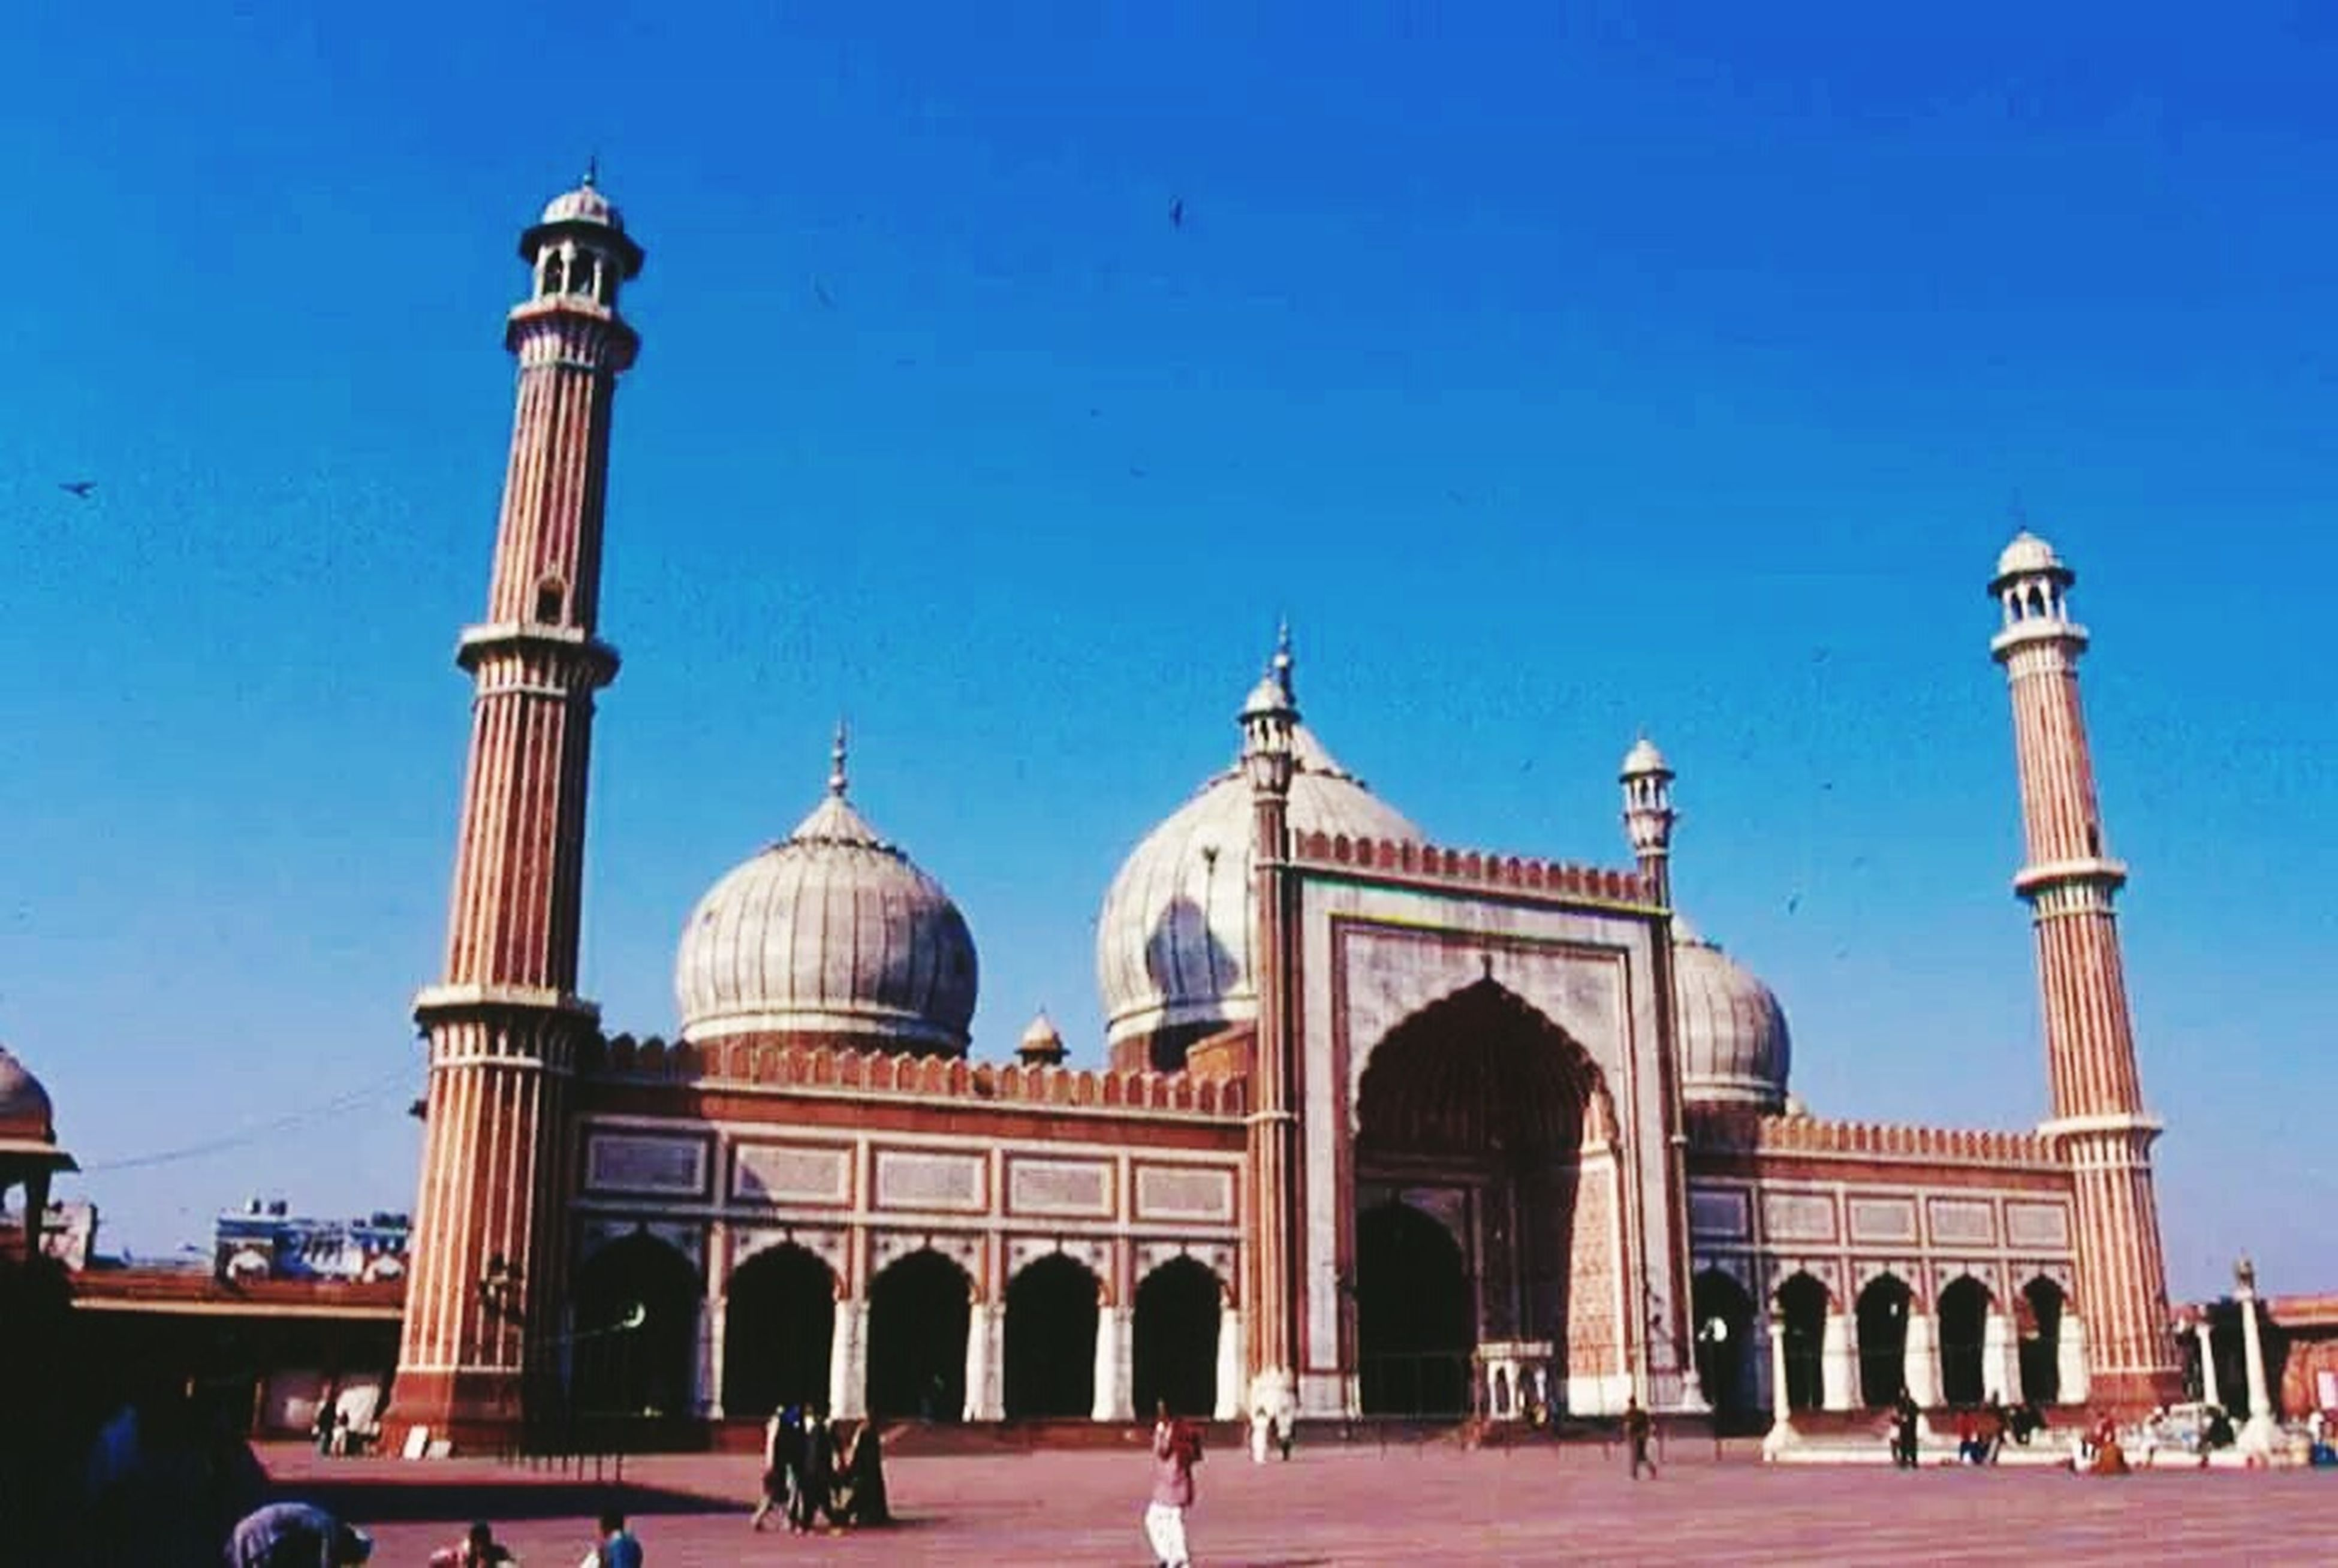 architecture, clear sky, built structure, building exterior, dome, blue, place of worship, famous place, facade, religion, copy space, history, travel destinations, islam, arch, tourism, mosque, spirituality, low angle view